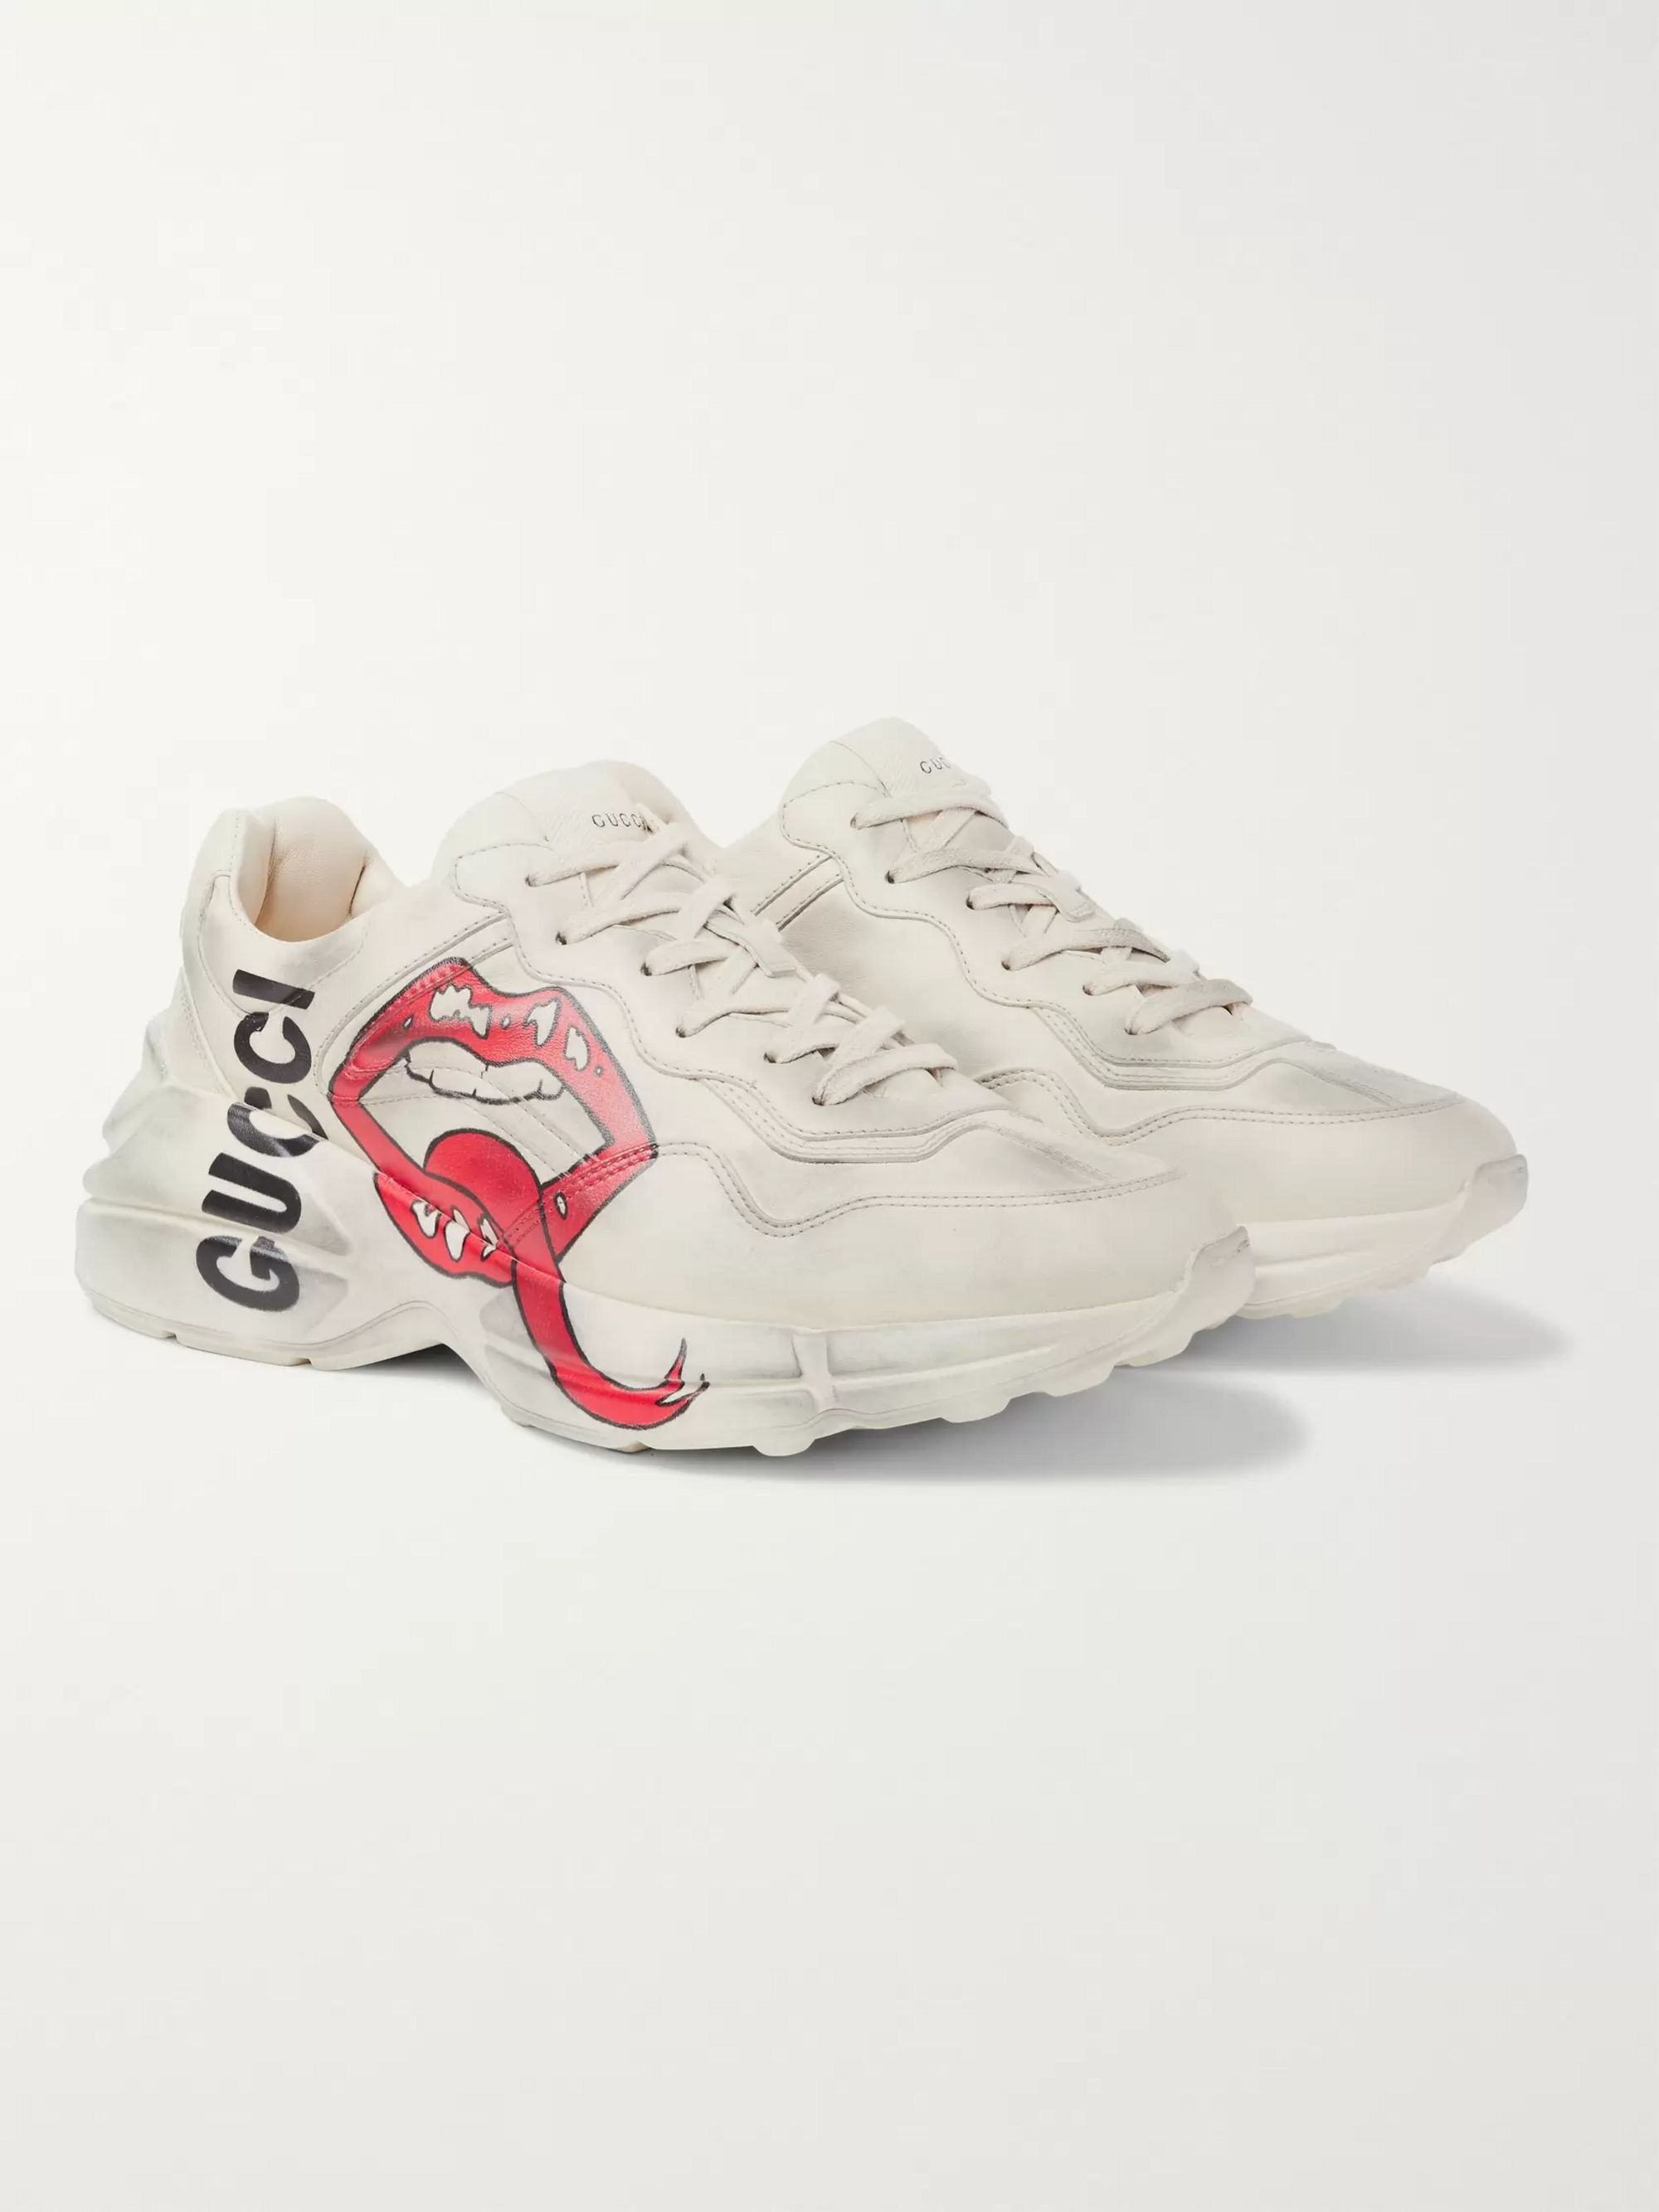 Gucci Rhyton Printed Distressed Leather Sneakers